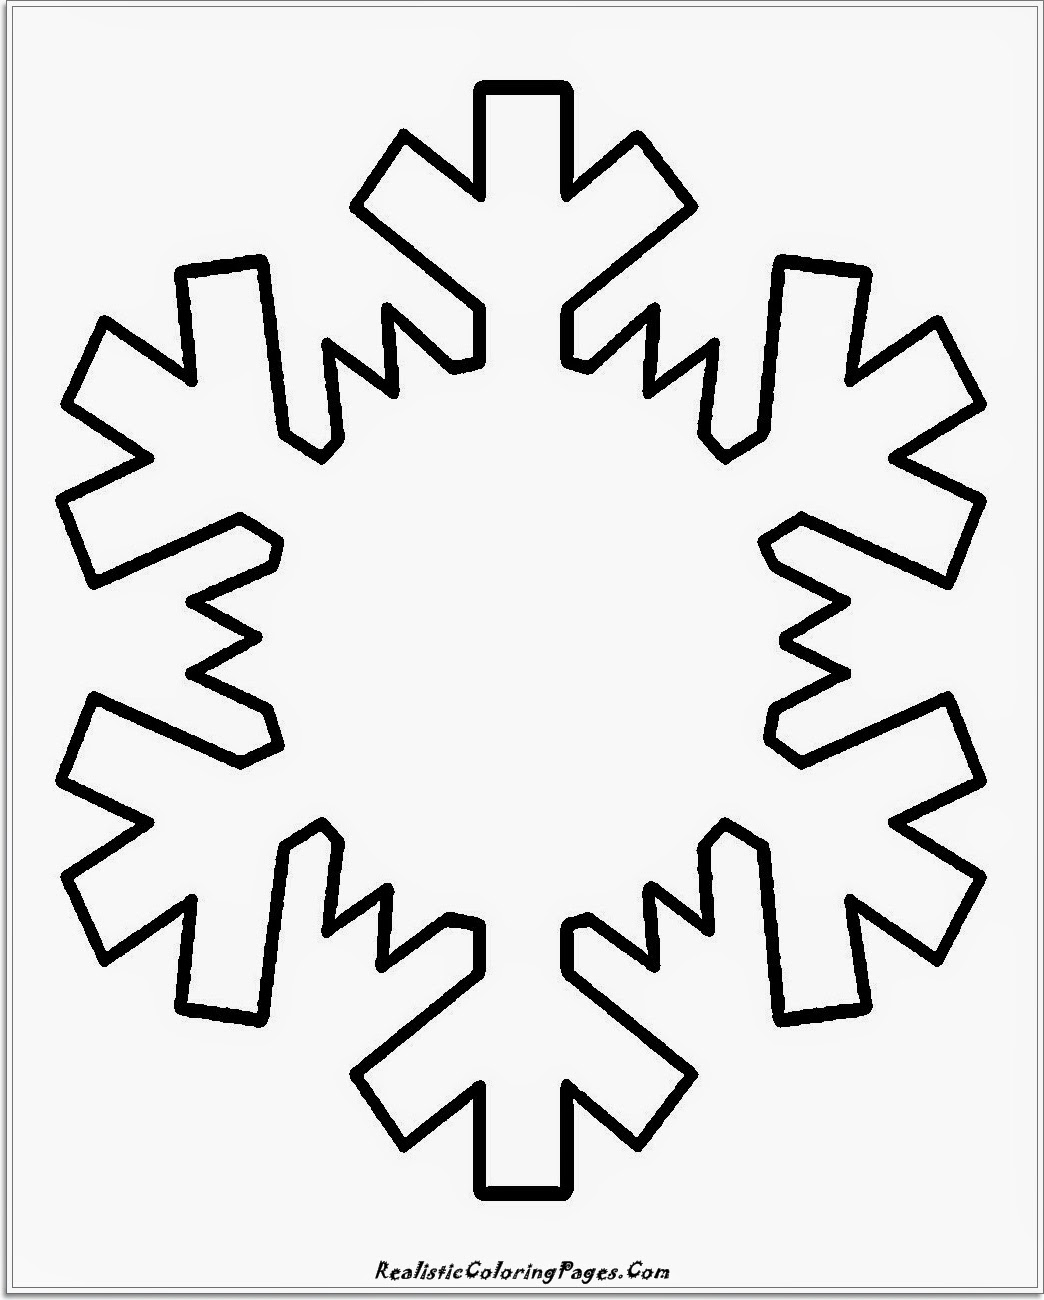 14 simple nature coloring pages realistic coloring pages for Snowflakes printable coloring pages